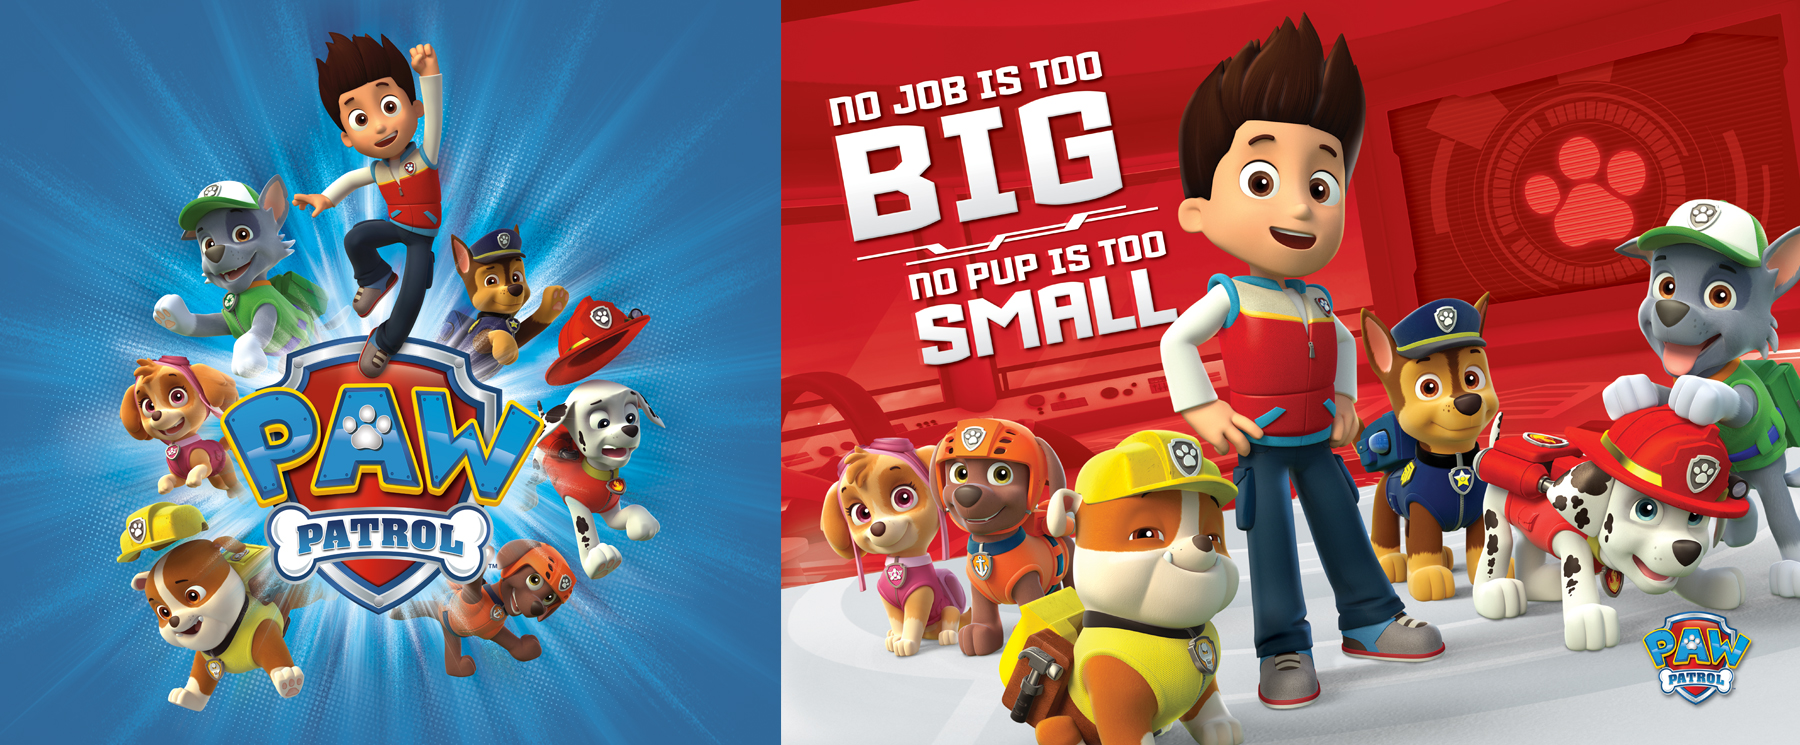 Paw Patrol Style Guide Design - Thumb 2